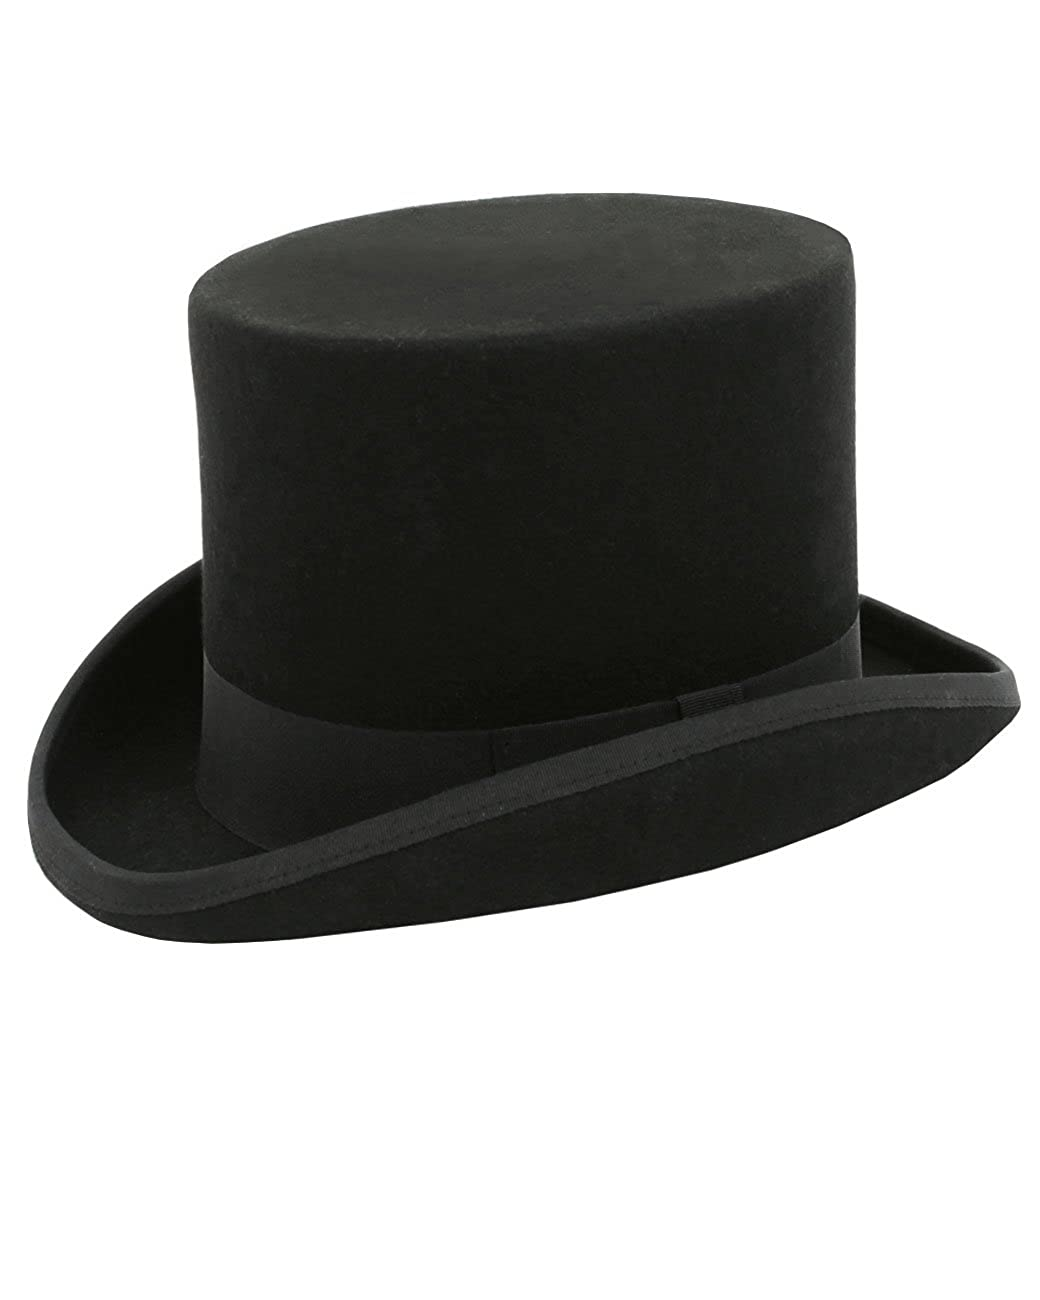 Steampunk Hats | Top Hats | Bowler Dobell Mens Black Top Hat 100% Wool Formal Wedding Races $69.95 AT vintagedancer.com